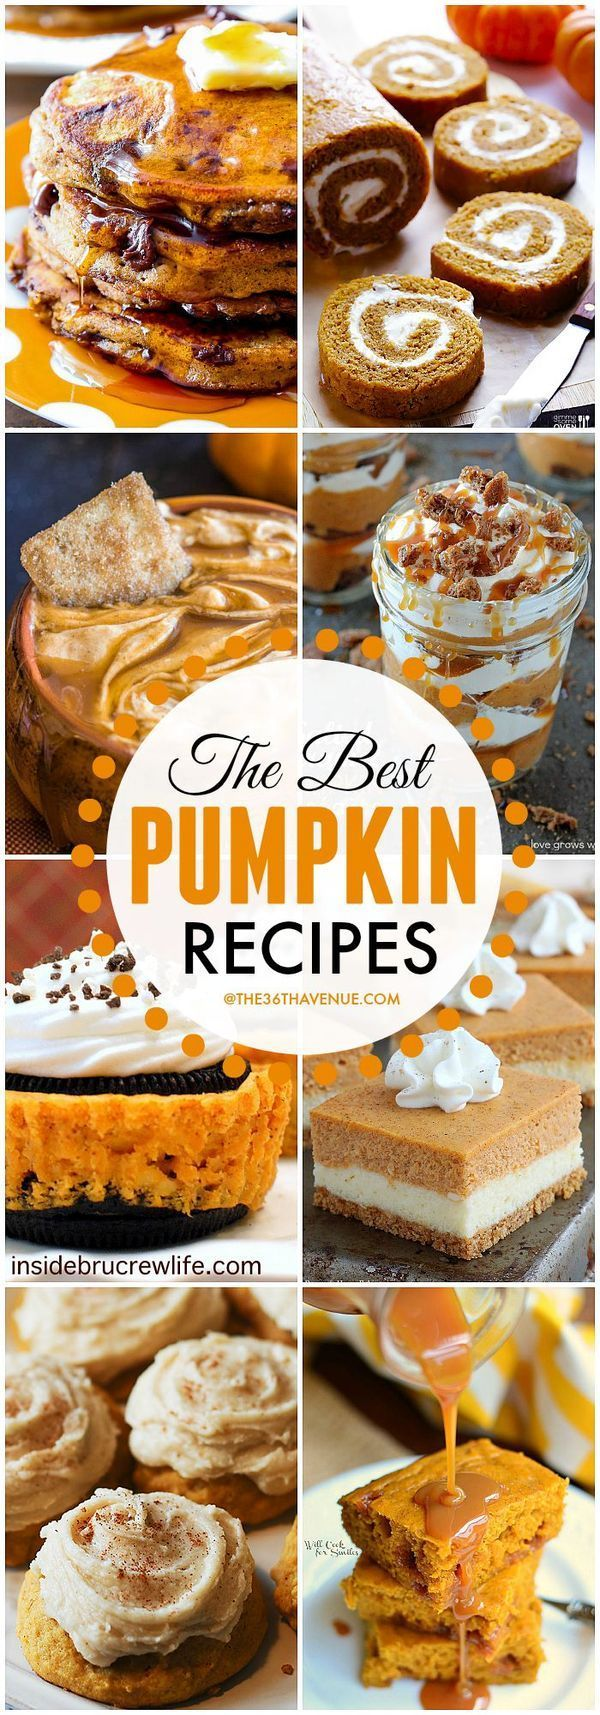 Recipes - Best Pumpkin Recipes at the36thavenue.com These are super good…